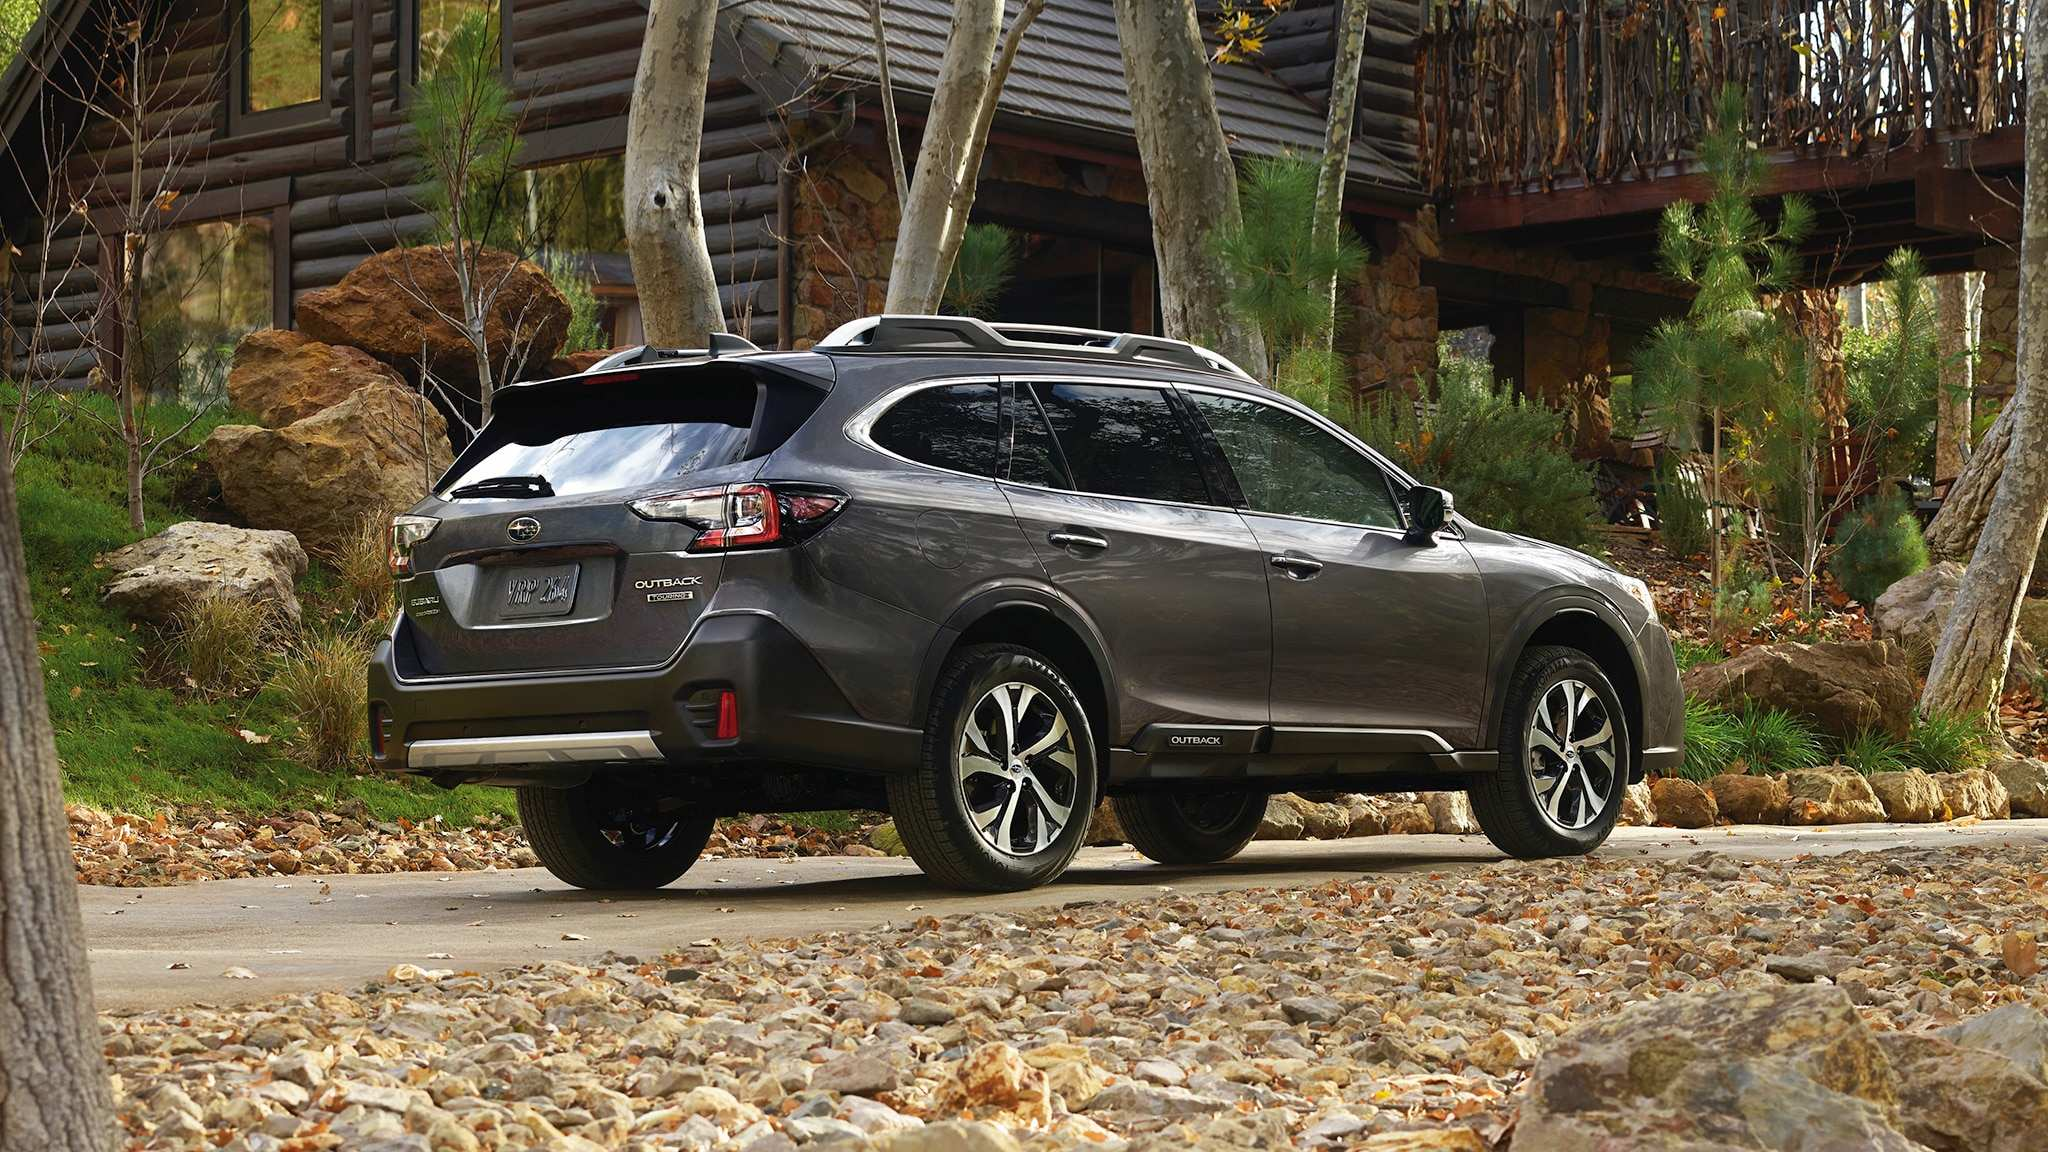 62 All New Subaru Colors 2020 Configurations